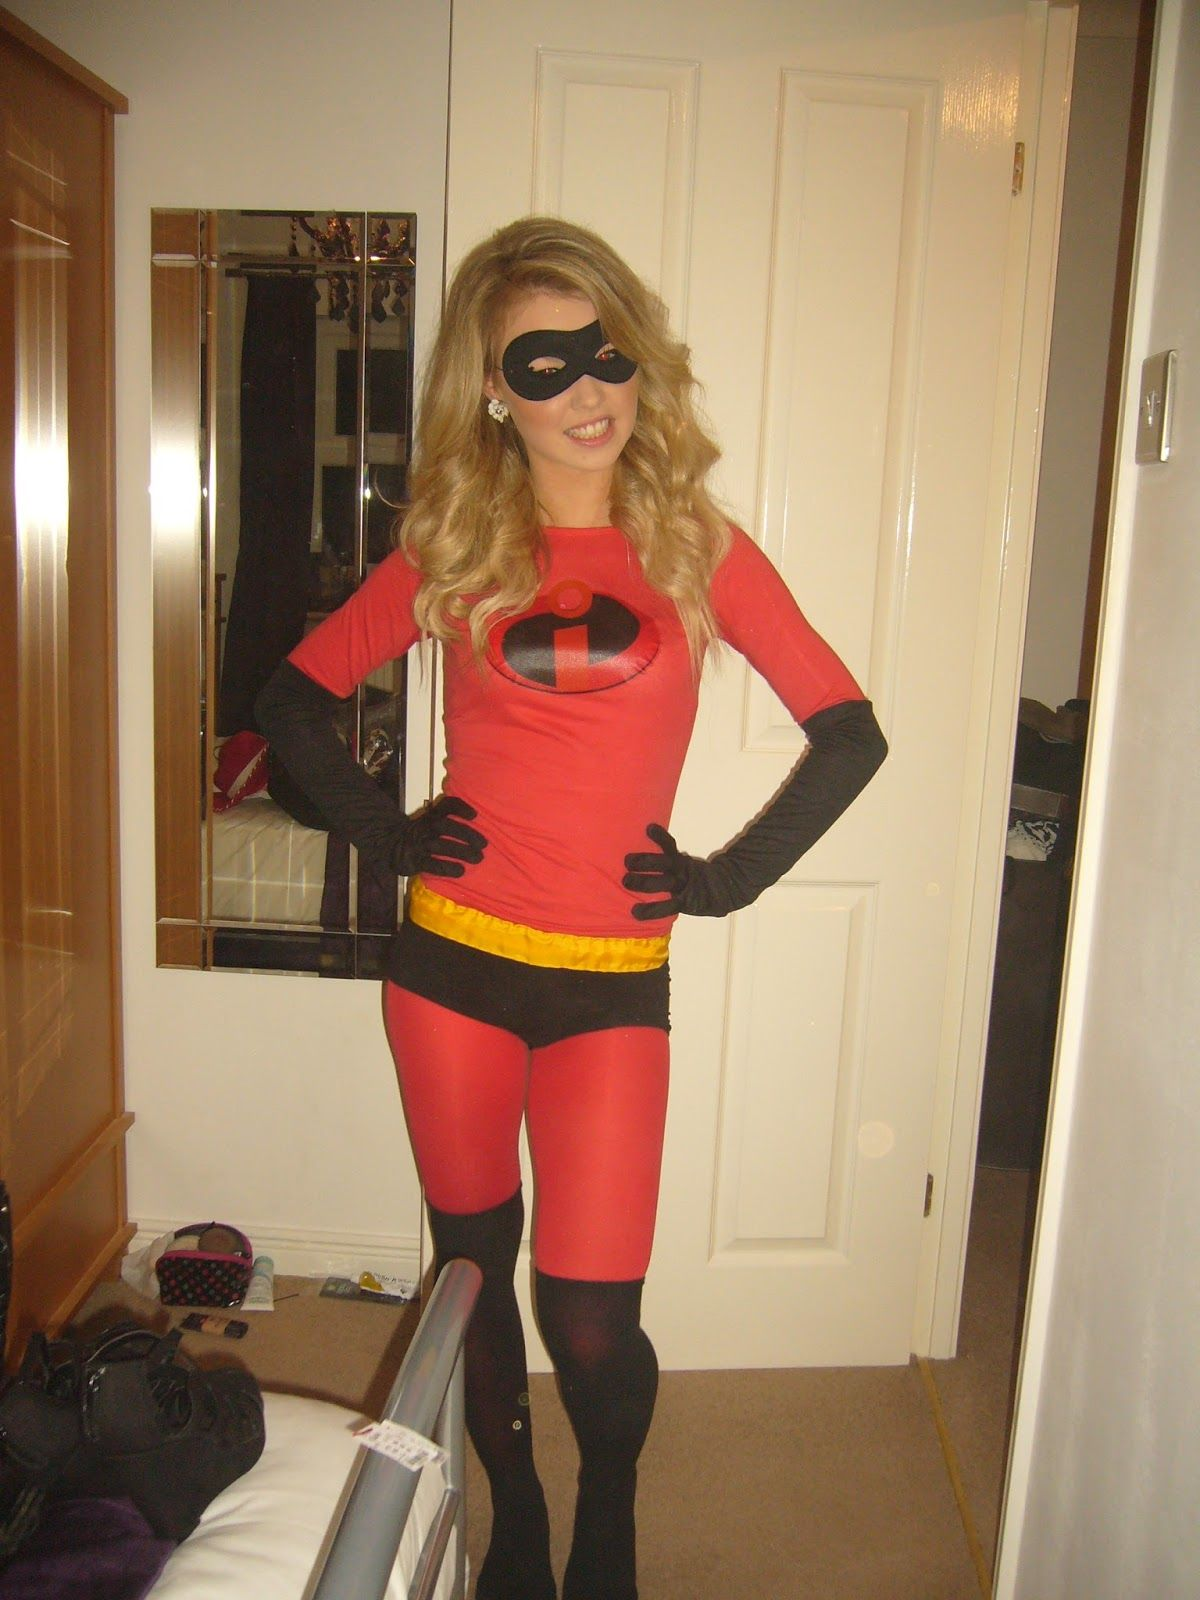 Pin by Lm on Halloween in 2020 Mrs incredible, Disney